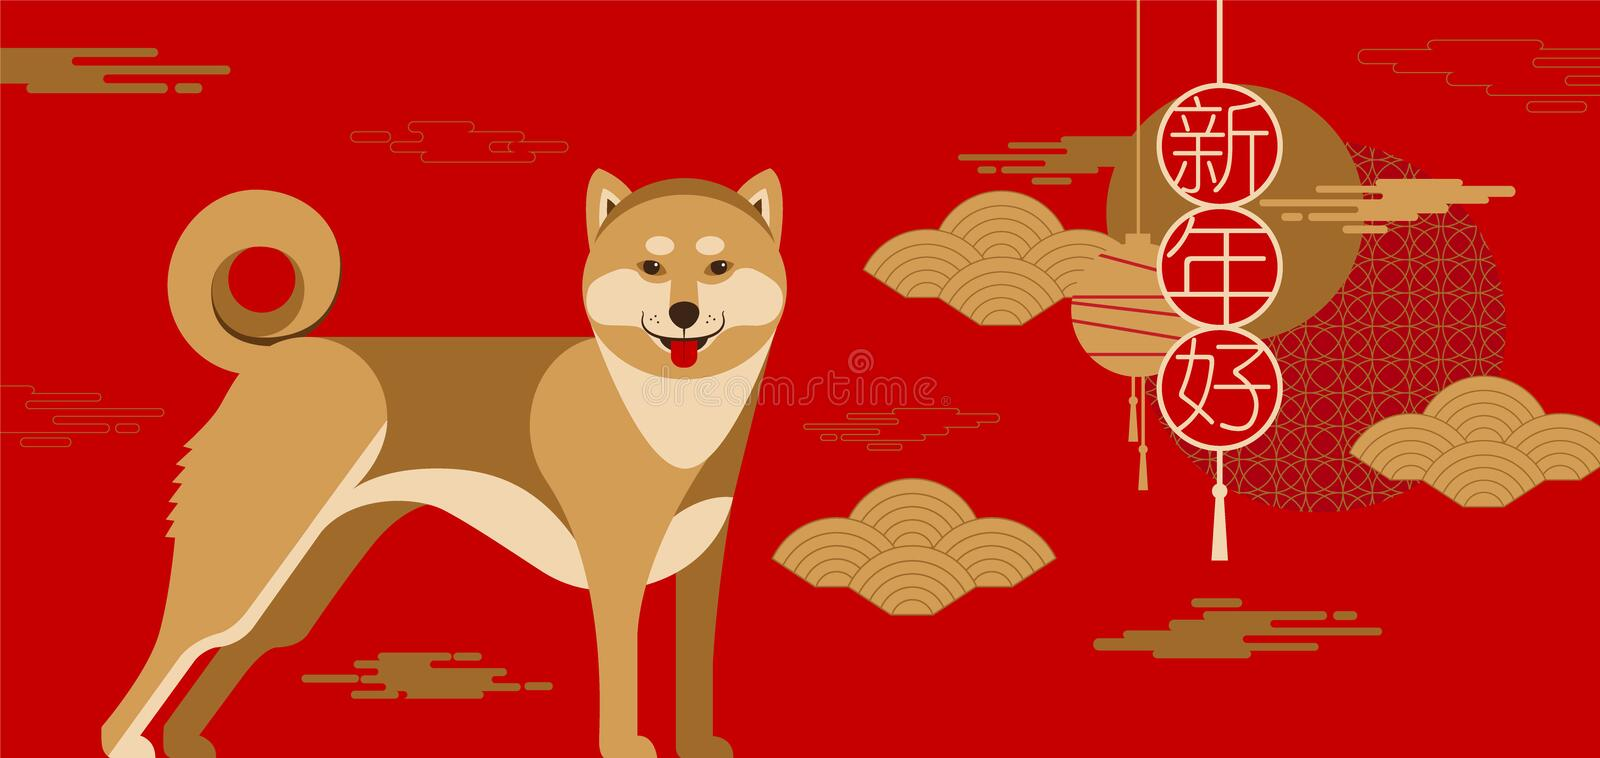 Happy new year, 2018, Chinese new year greetings, Year of the do vector illustration